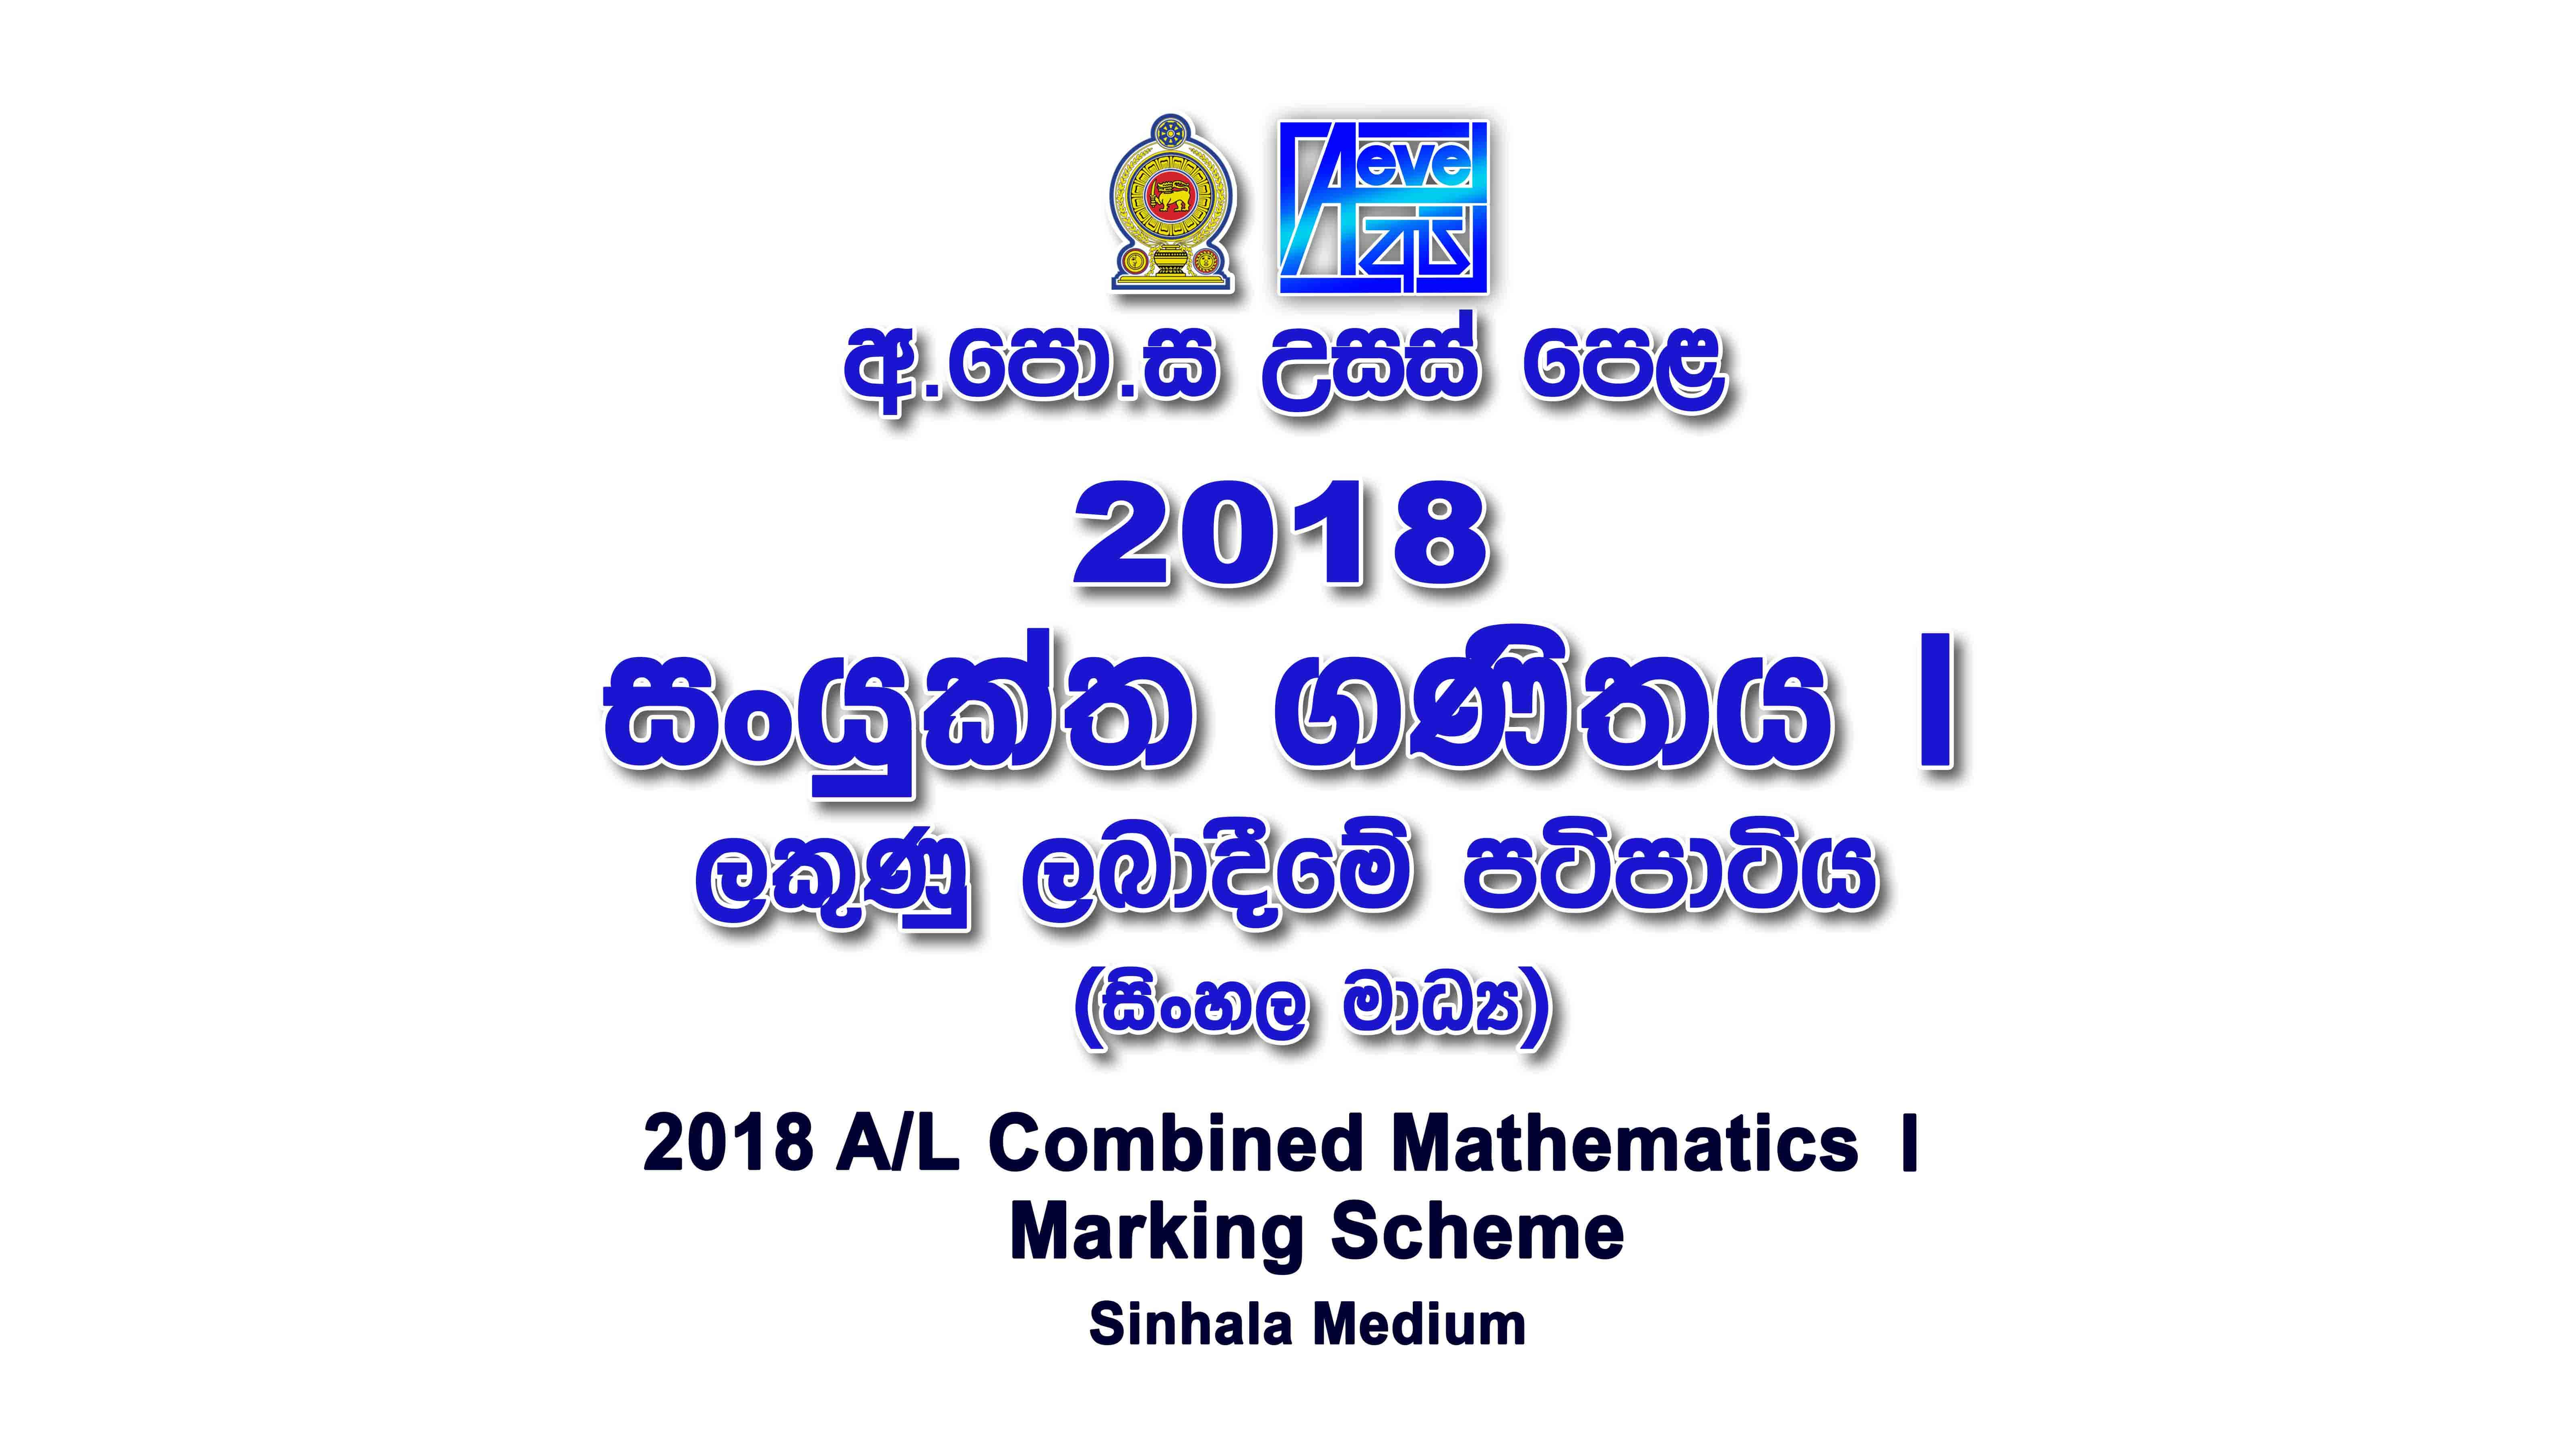 A/L 2018 Combined Maths I Marking